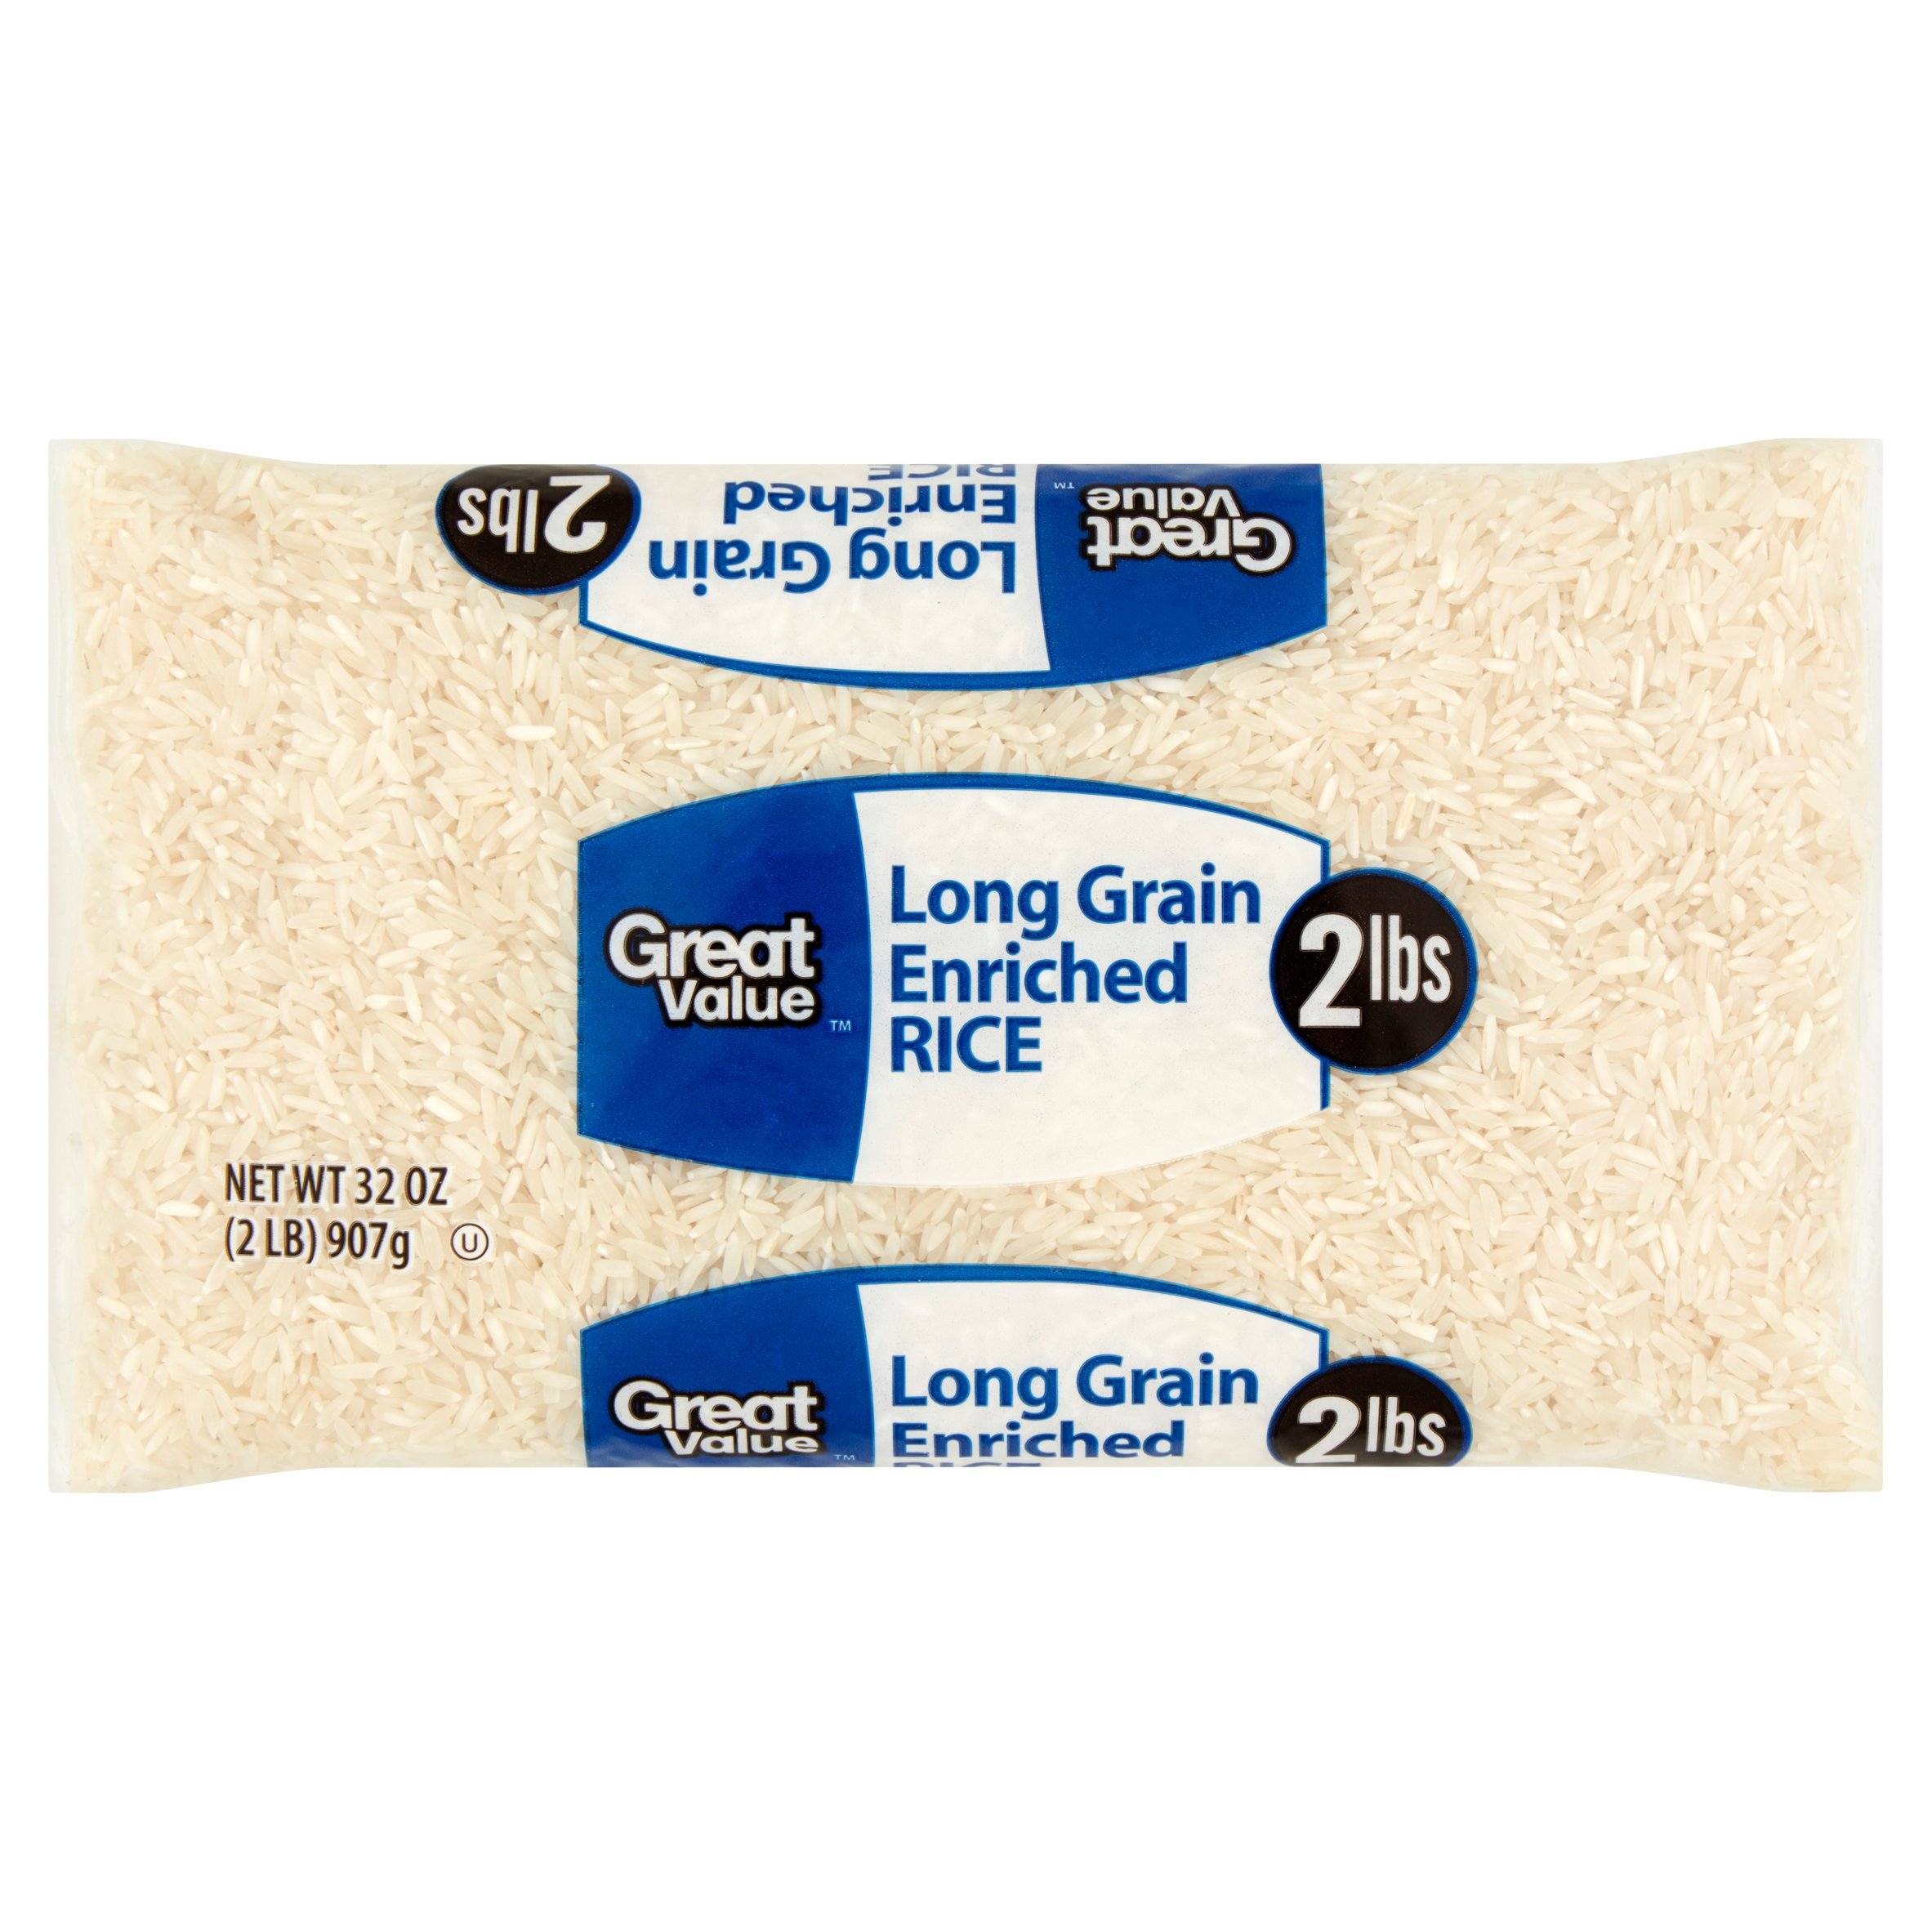 Great Value Long Grain Enriched Rice, 32 oz by Wal-Mart Stores, Inc.